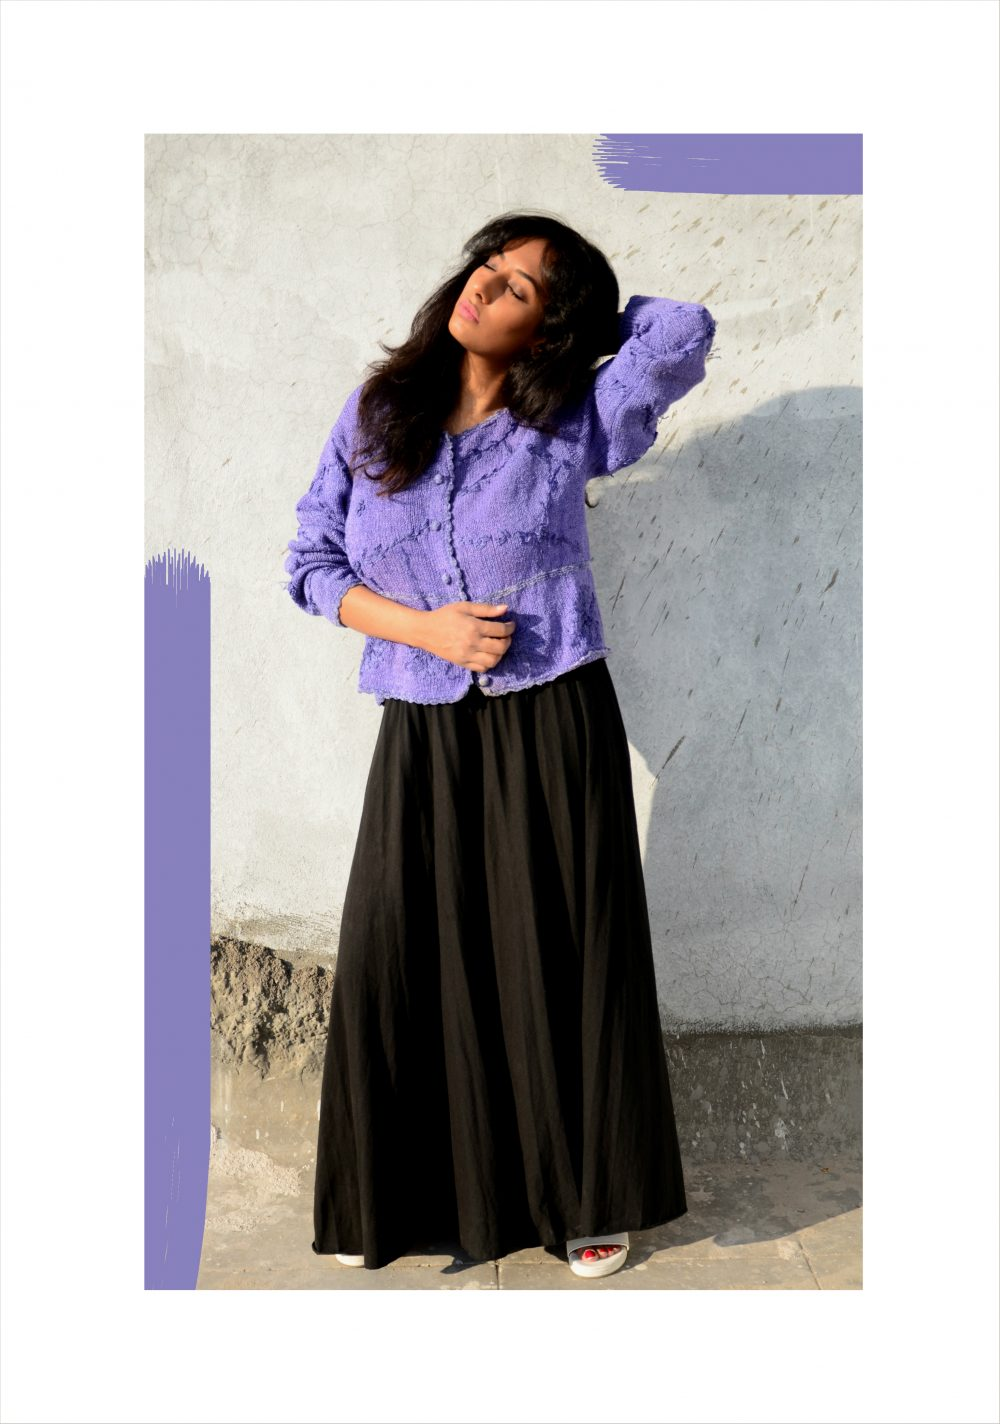 Lookbook ; Conceptual ; fashion photography ; Lilac ; blue ; sweater ; Goa ; vintage ; pop of colors ; nude lips ; messy hair ; strong ; winter fashion ; winter outfit ; Dark ; Naznin ; hyderabad fashion bloggers ; hyderabad bloggers ; hyderabad fashion blogger ; I Dress for the Applause ;